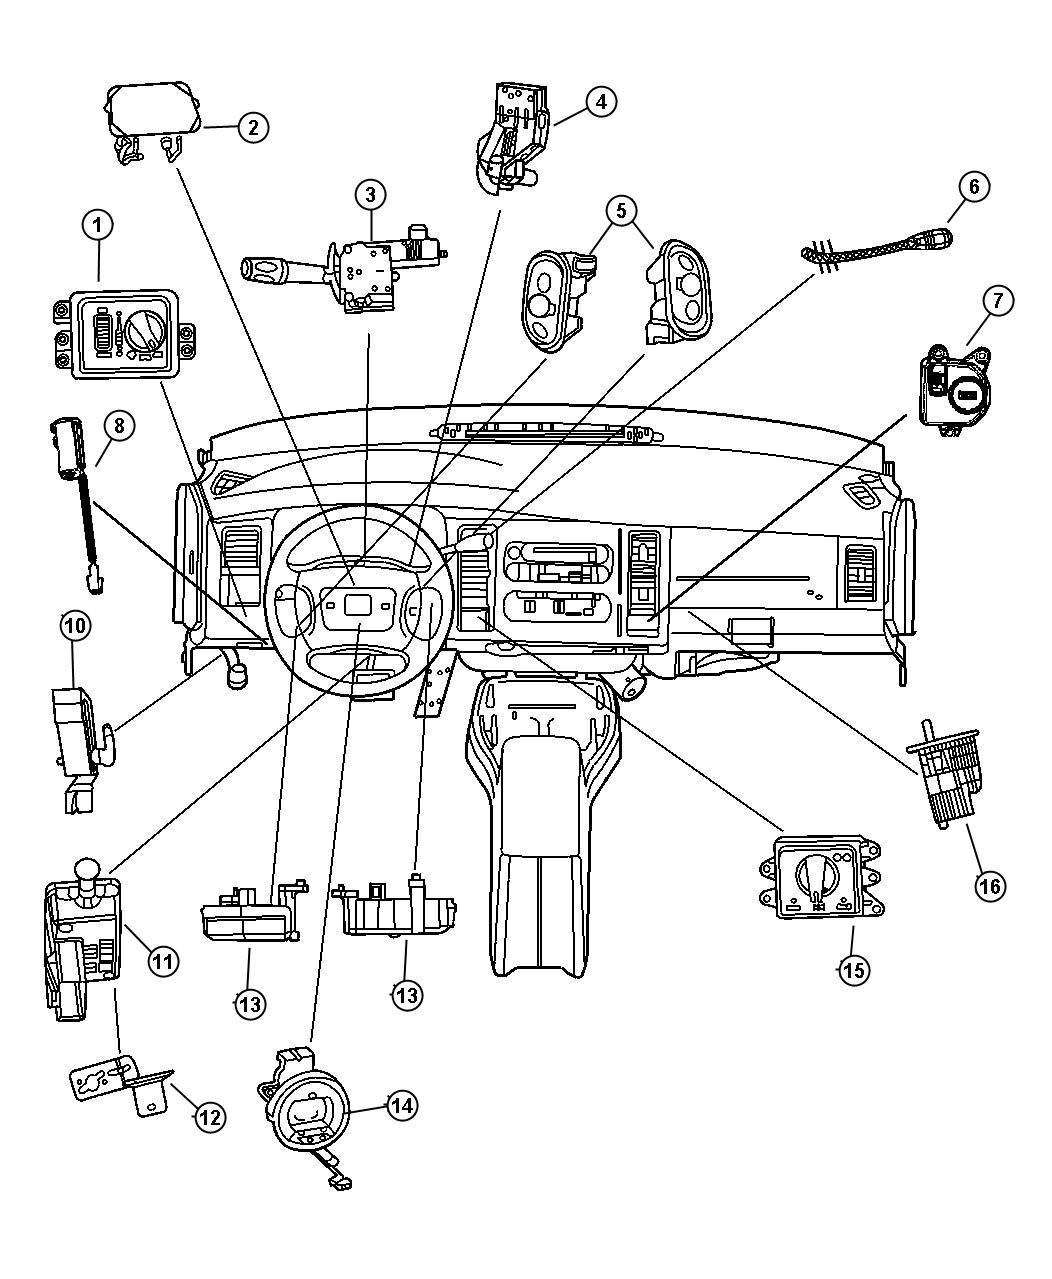 tags: #ford bronco wiring diagram#ford ranger wiring diagram#1968 ford  mustang wiring diagram#ford festiva wiring diagram#wiring diagram ford  pinto#ford